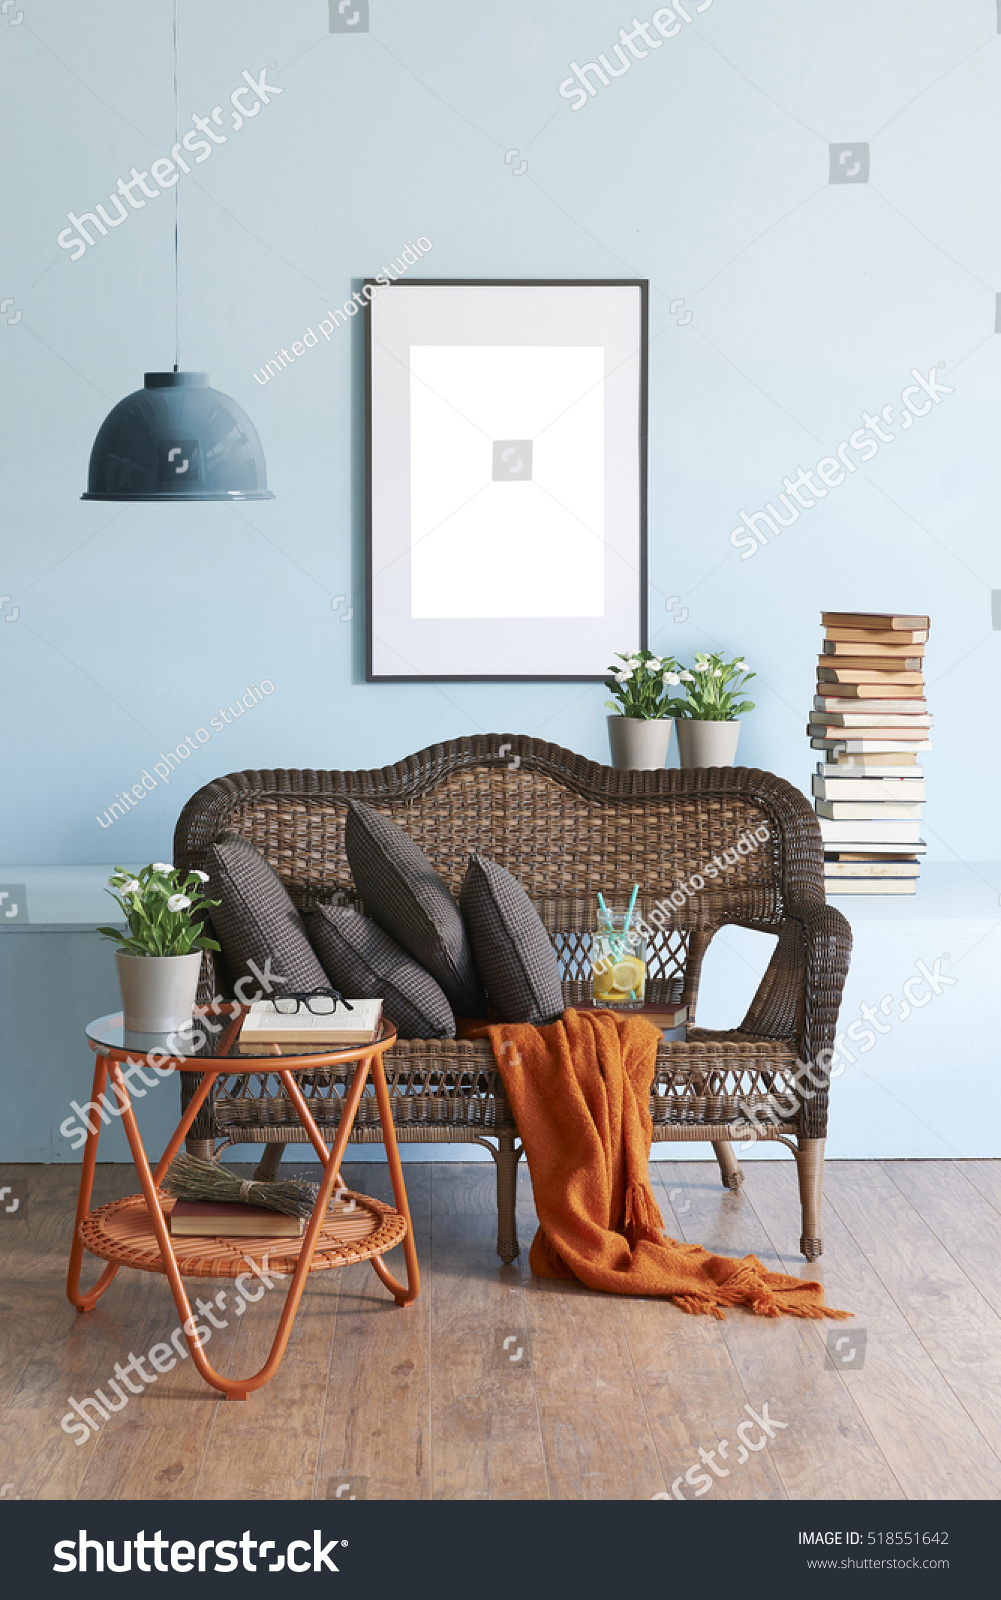 Blue wall interior concept and wicker furniture ez canvas